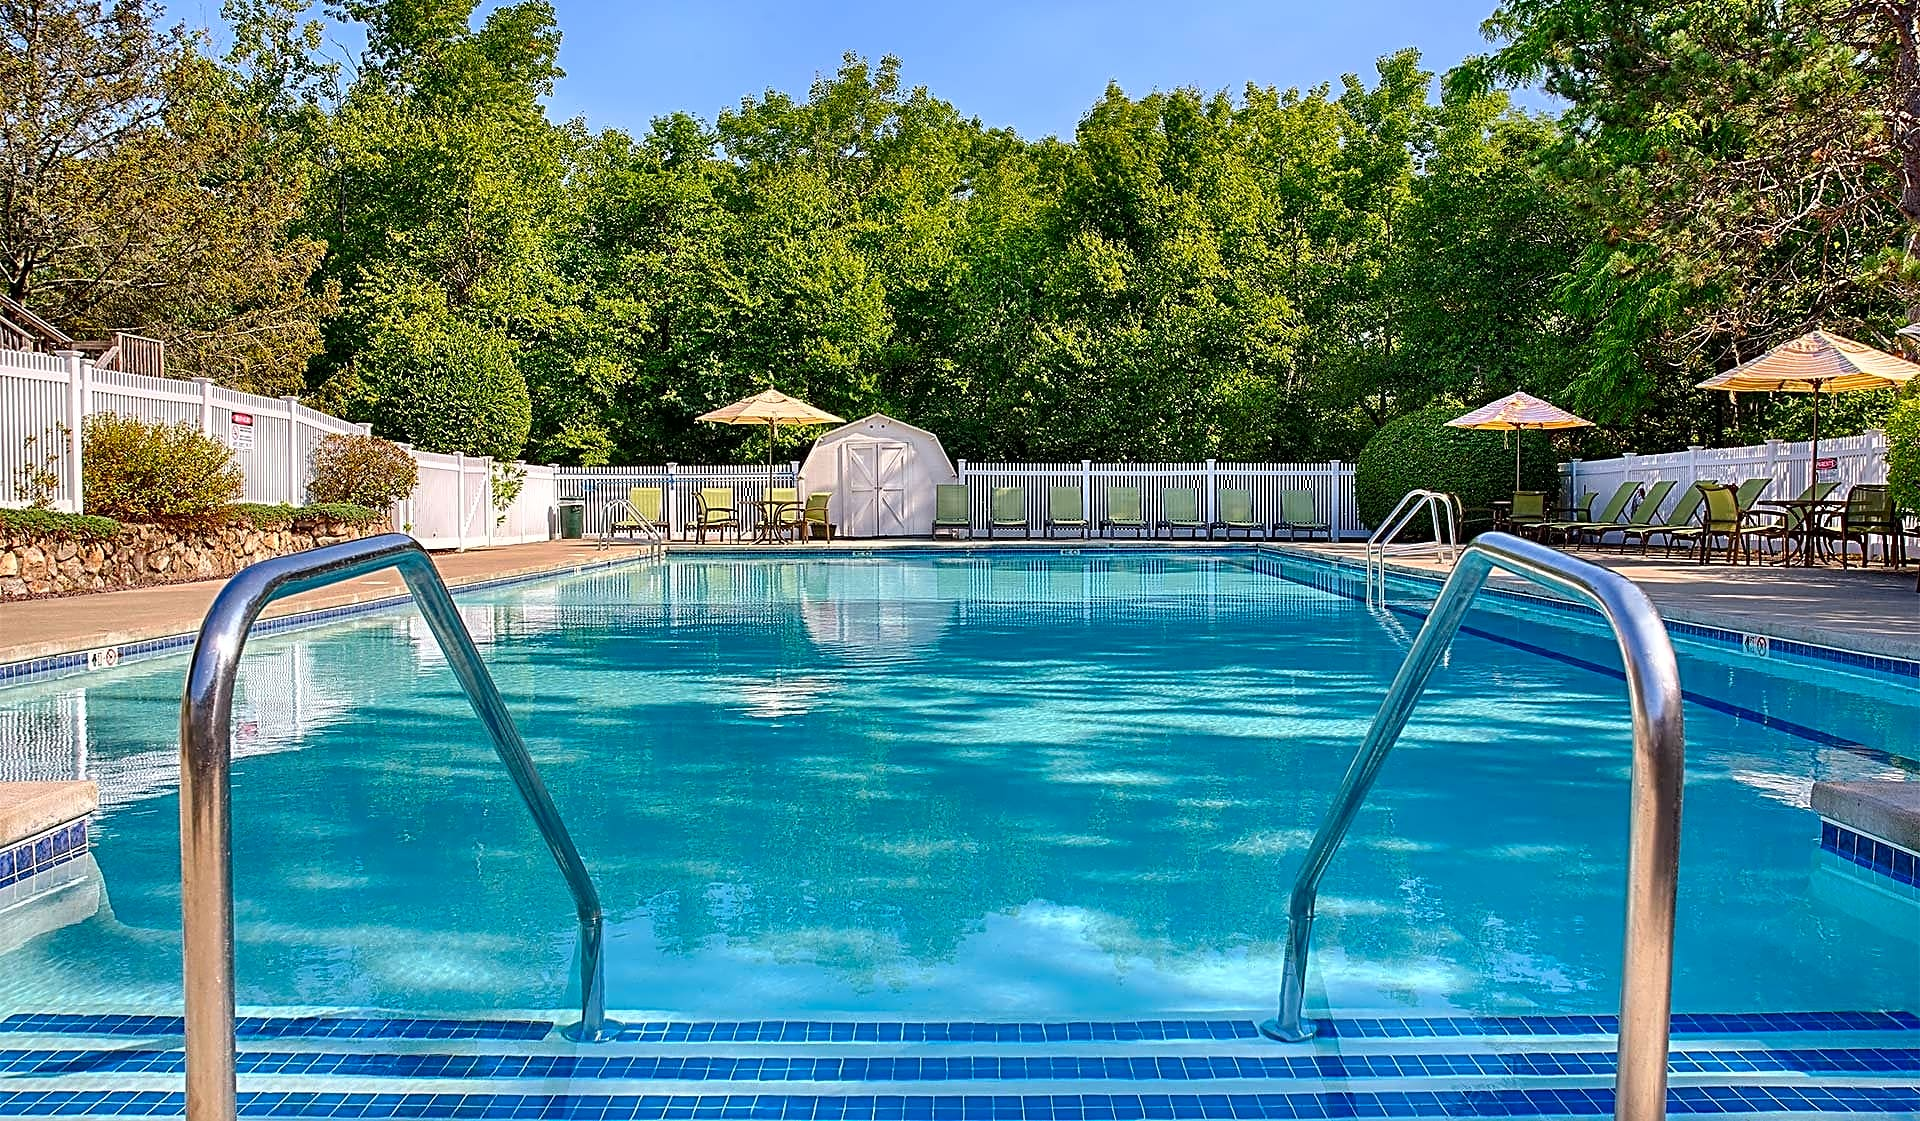 Wexford village apartment homes worcester ma 01604 - Anna university swimming pool reviews ...